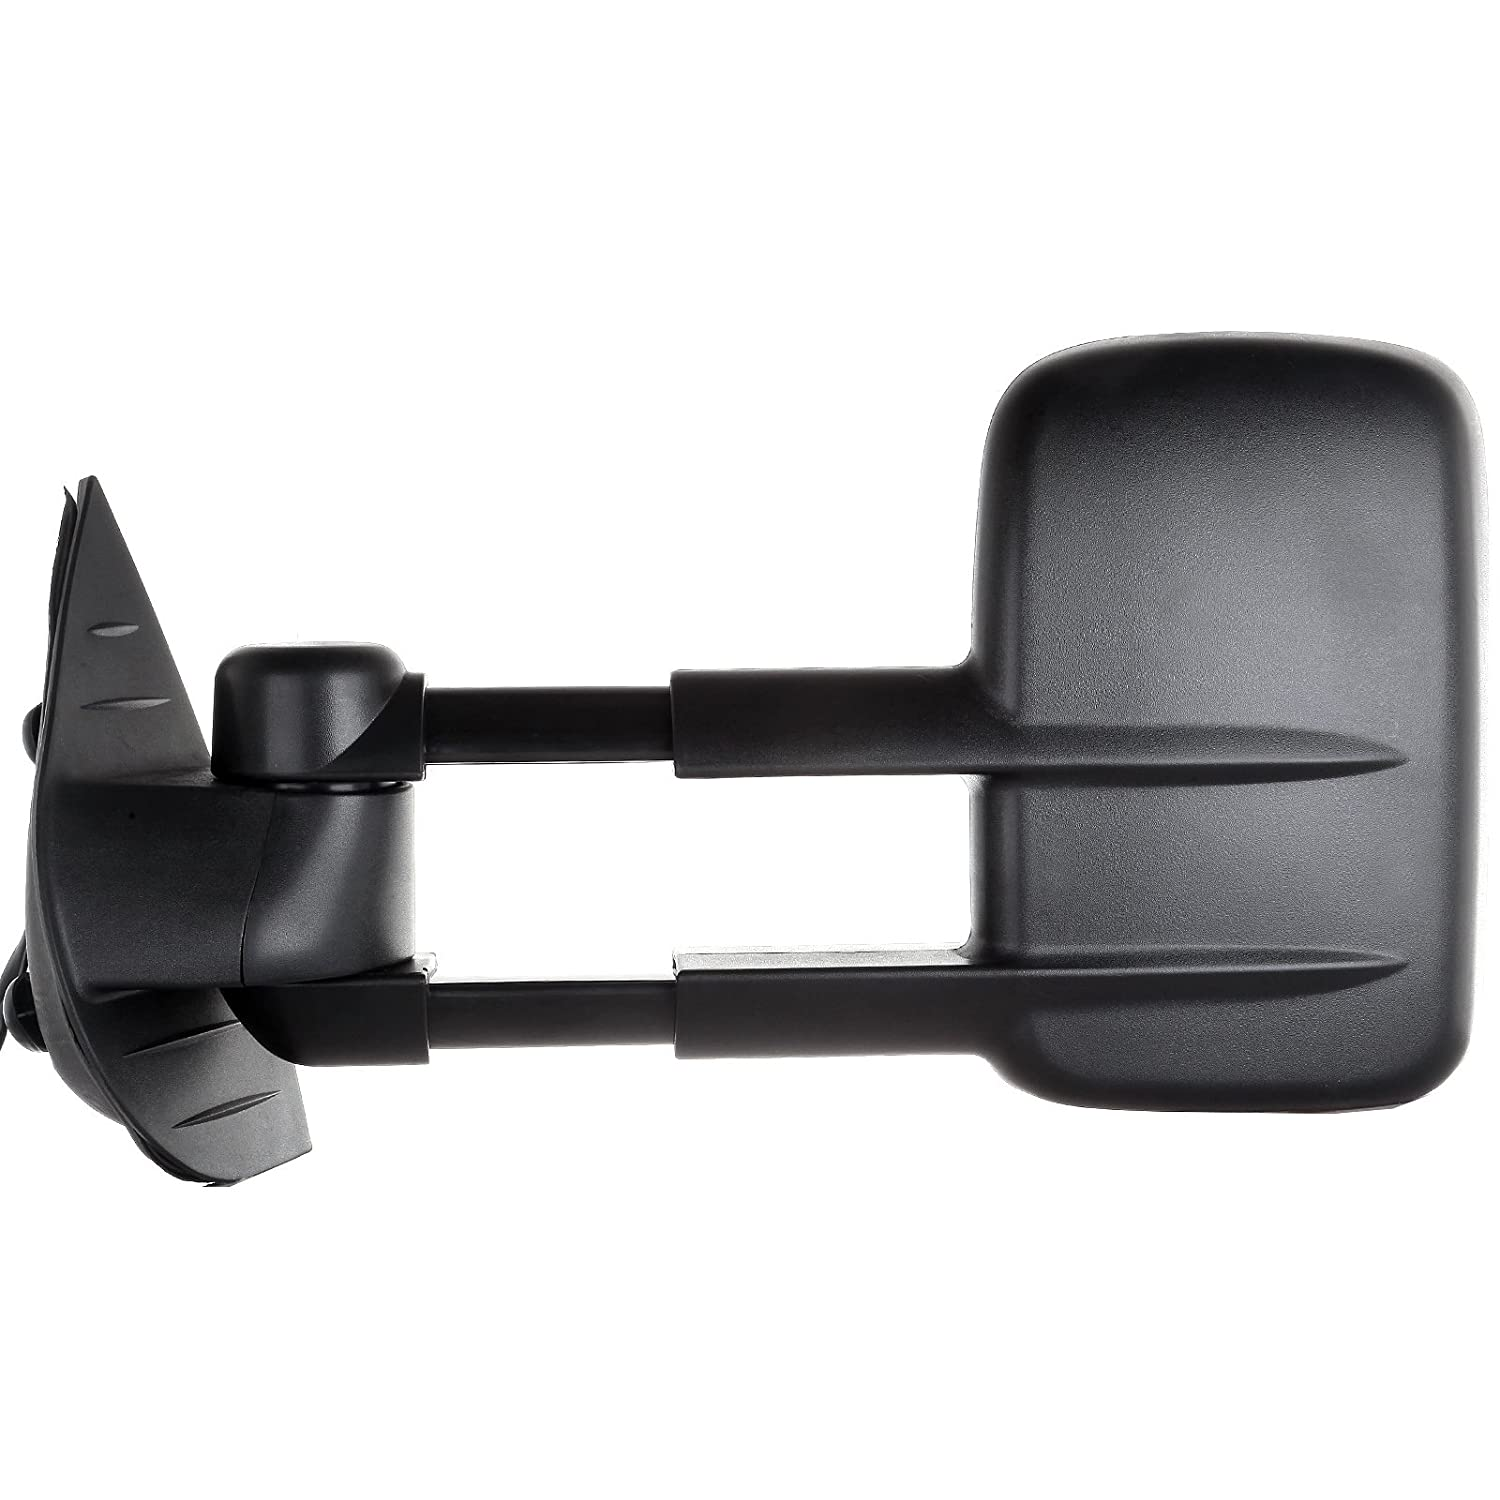 ECCPP Black Manual adjusted Side View Mirror Tow Towing Mirrors Left /& Right Pair Set for 94-01 Dodge Ram 1500 94-02 Ram 2500 3500 Truck